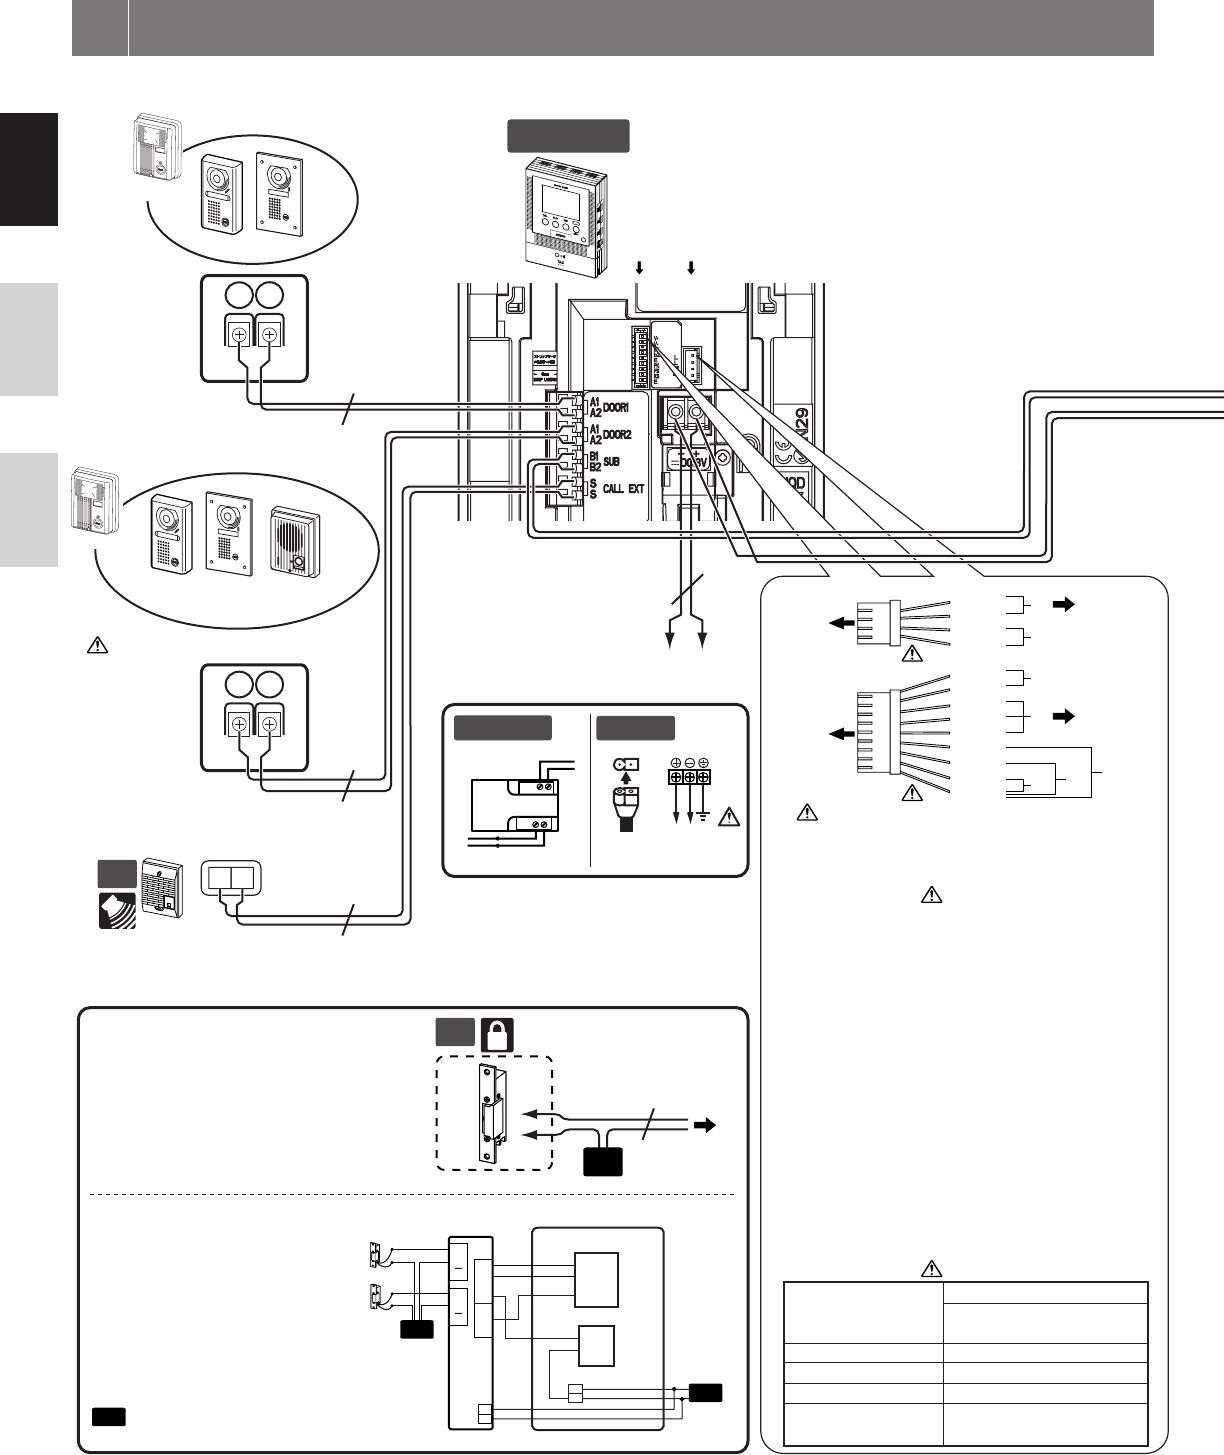 Videx 836 Wiring Diagram